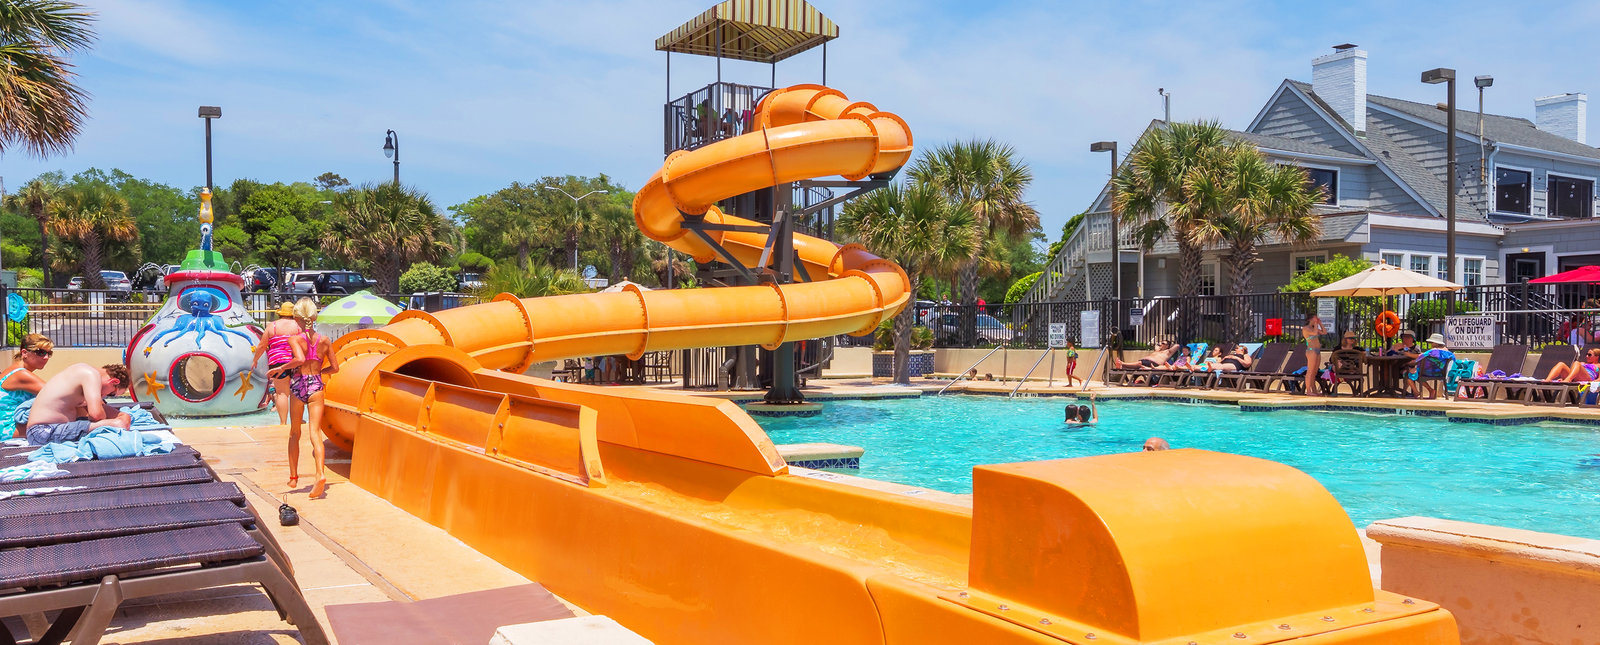 Caribbean Resorts Myrtle Beach Sc Reviews Sandals Resorts Event Coming To Eventworks In Myrtle